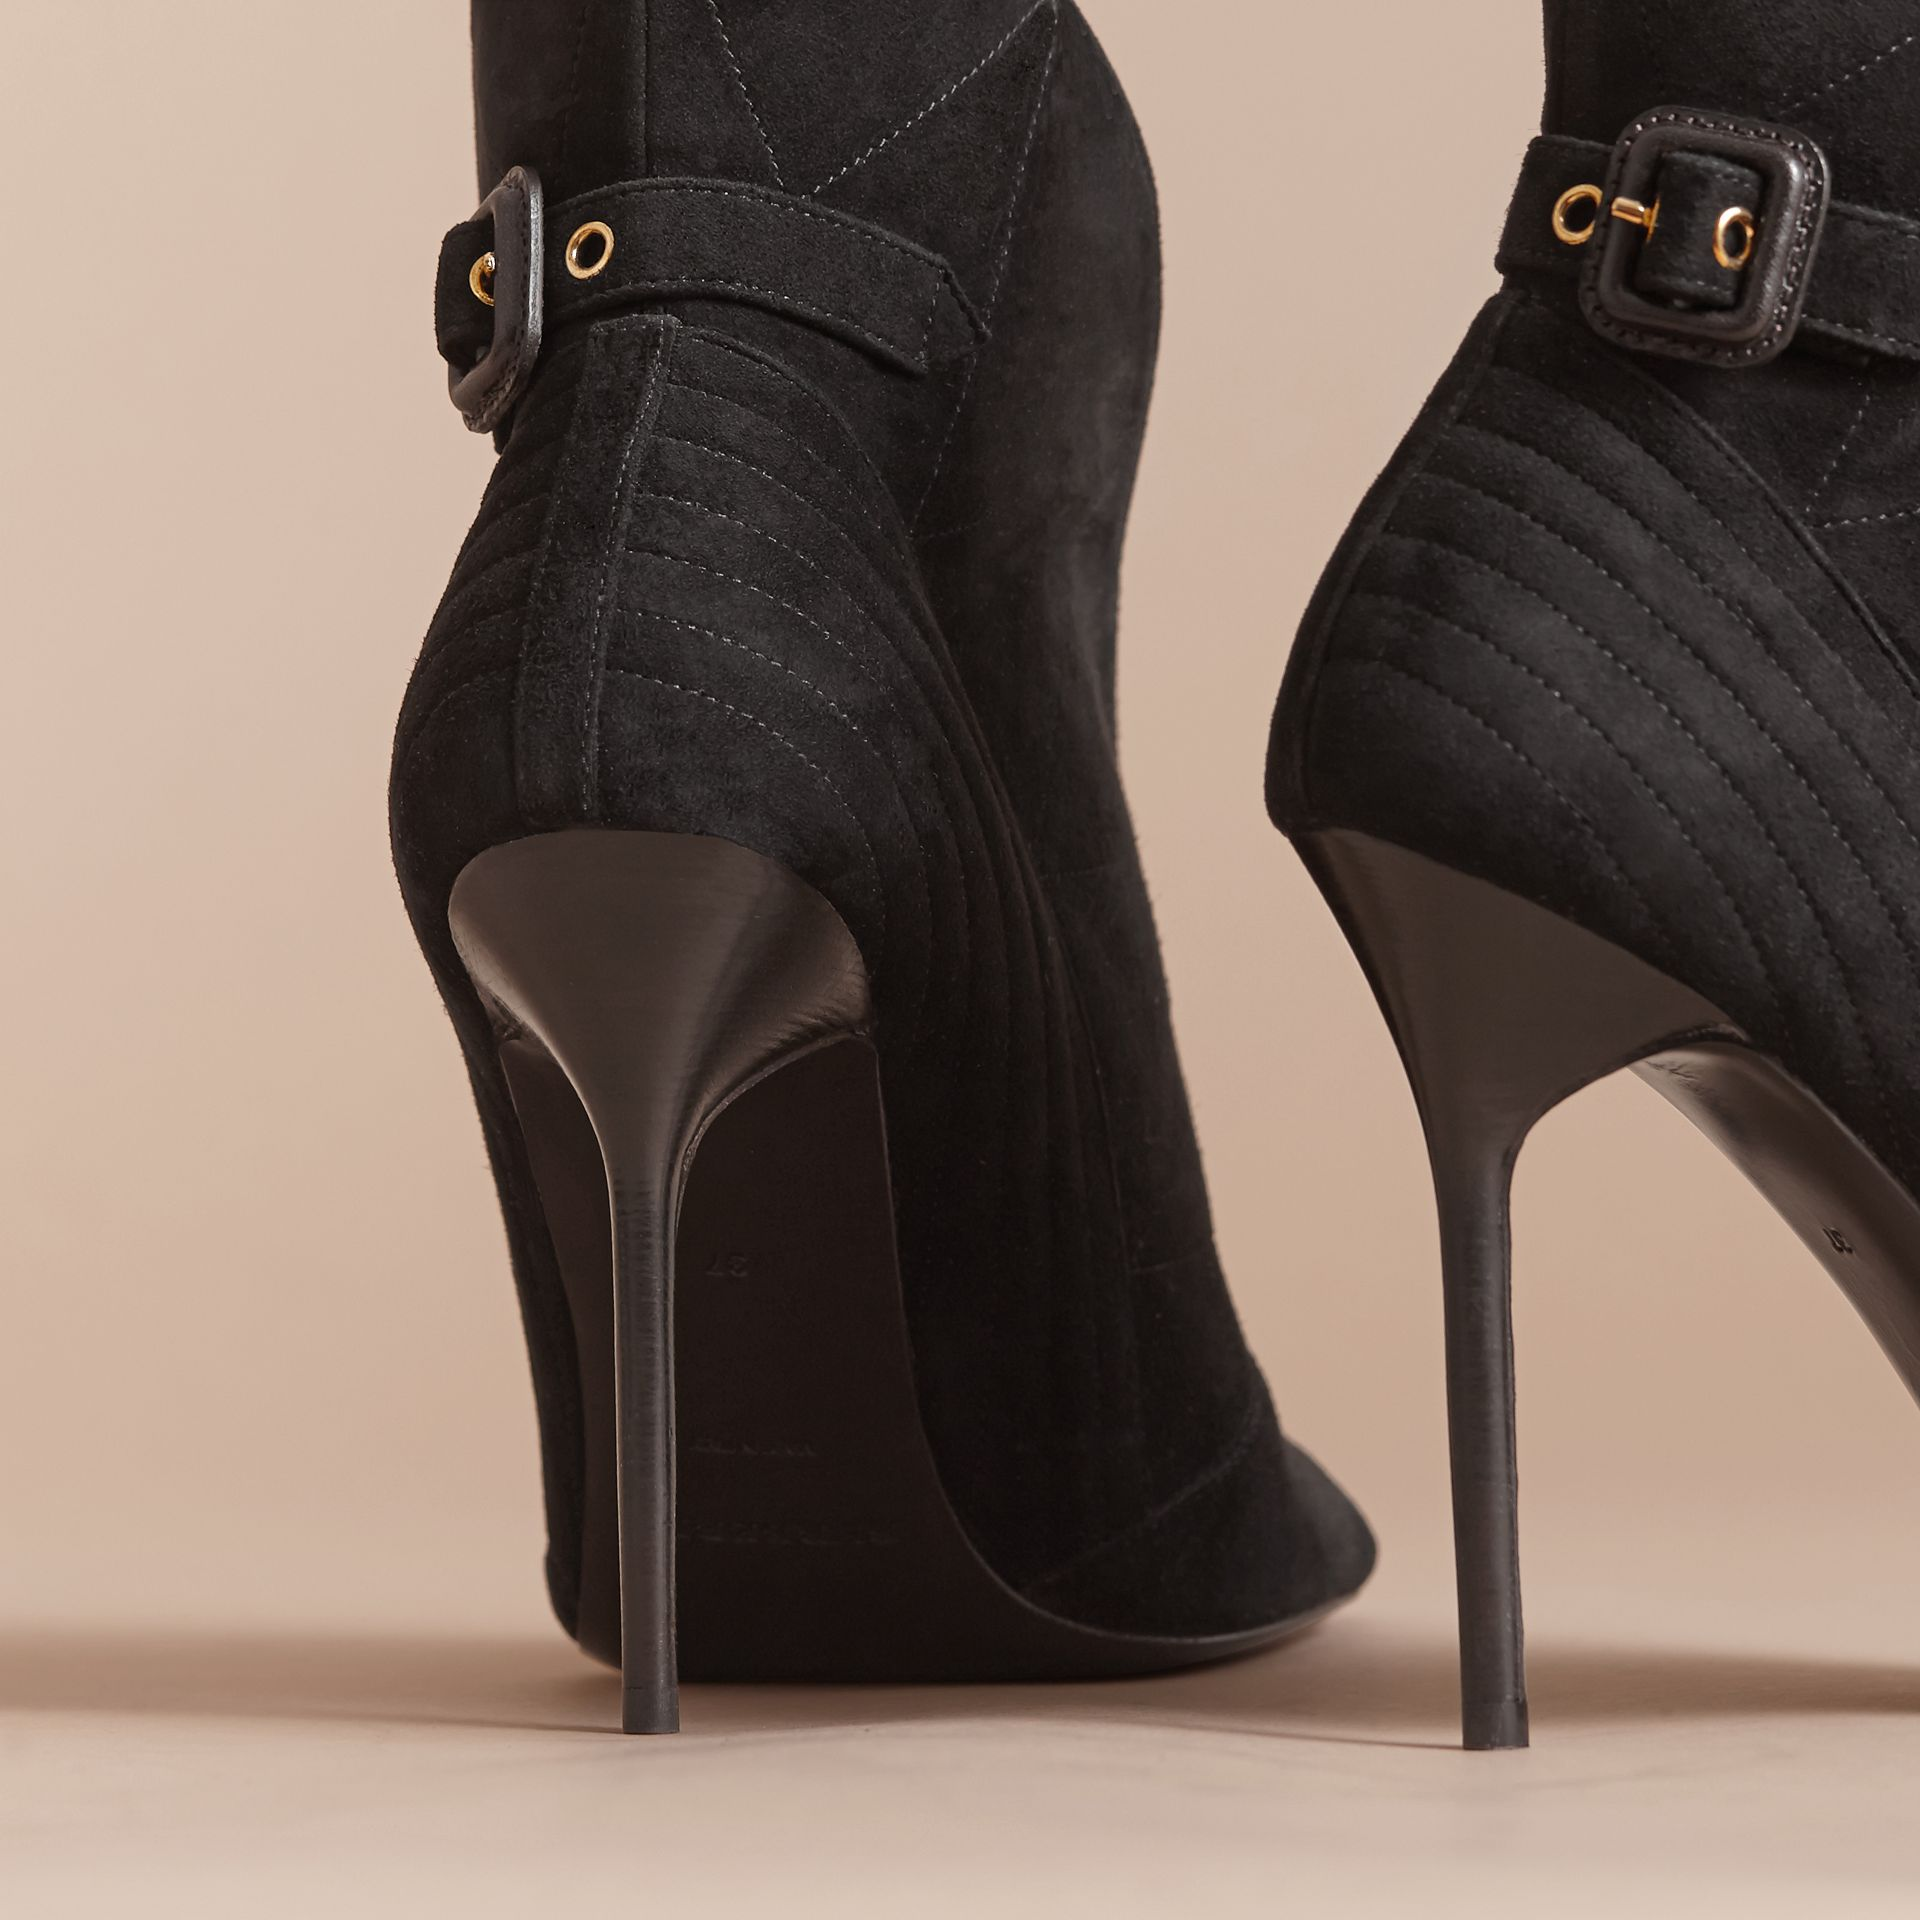 Buckle Detail Suede Peep-toe Ankle Boots in Black - Women | Burberry Singapore - gallery image 4